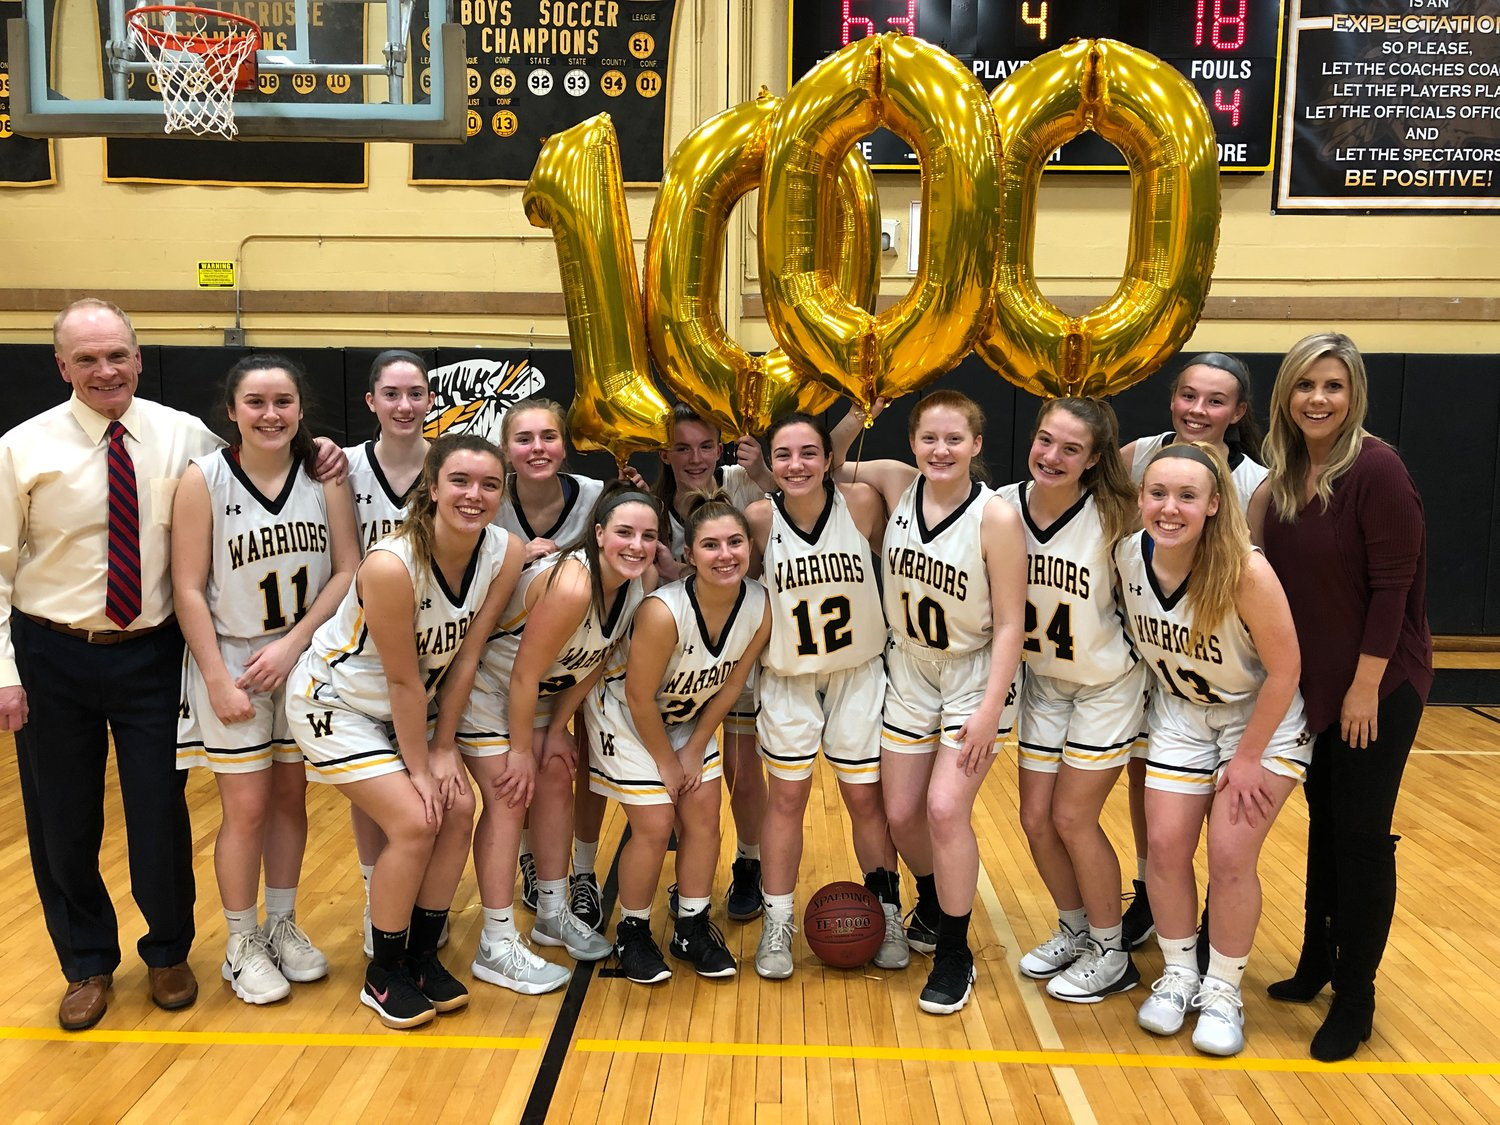 Wantagh High School senior Caitlin Albanese scored her 1,000th point during a home game on Jan. 29.